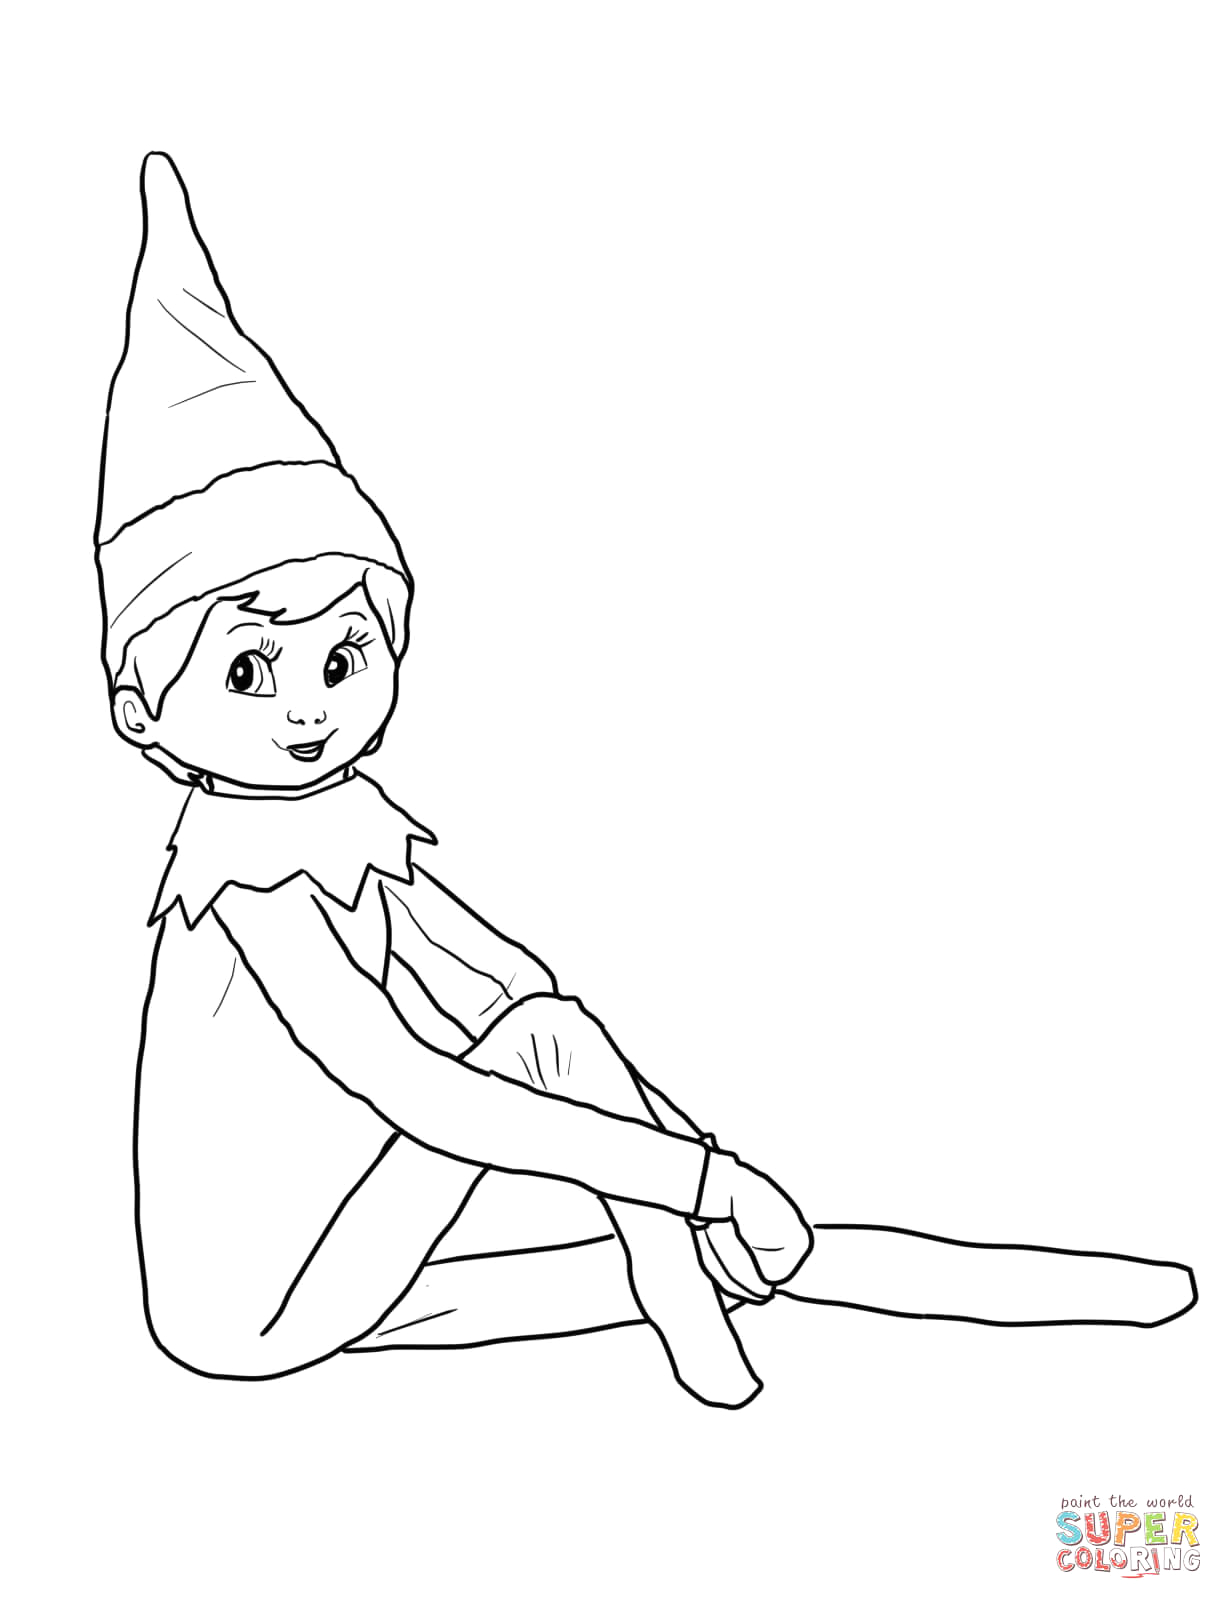 Elf On the Shelf Coloring Pages Girl Elf On the Shelf Coloring Page